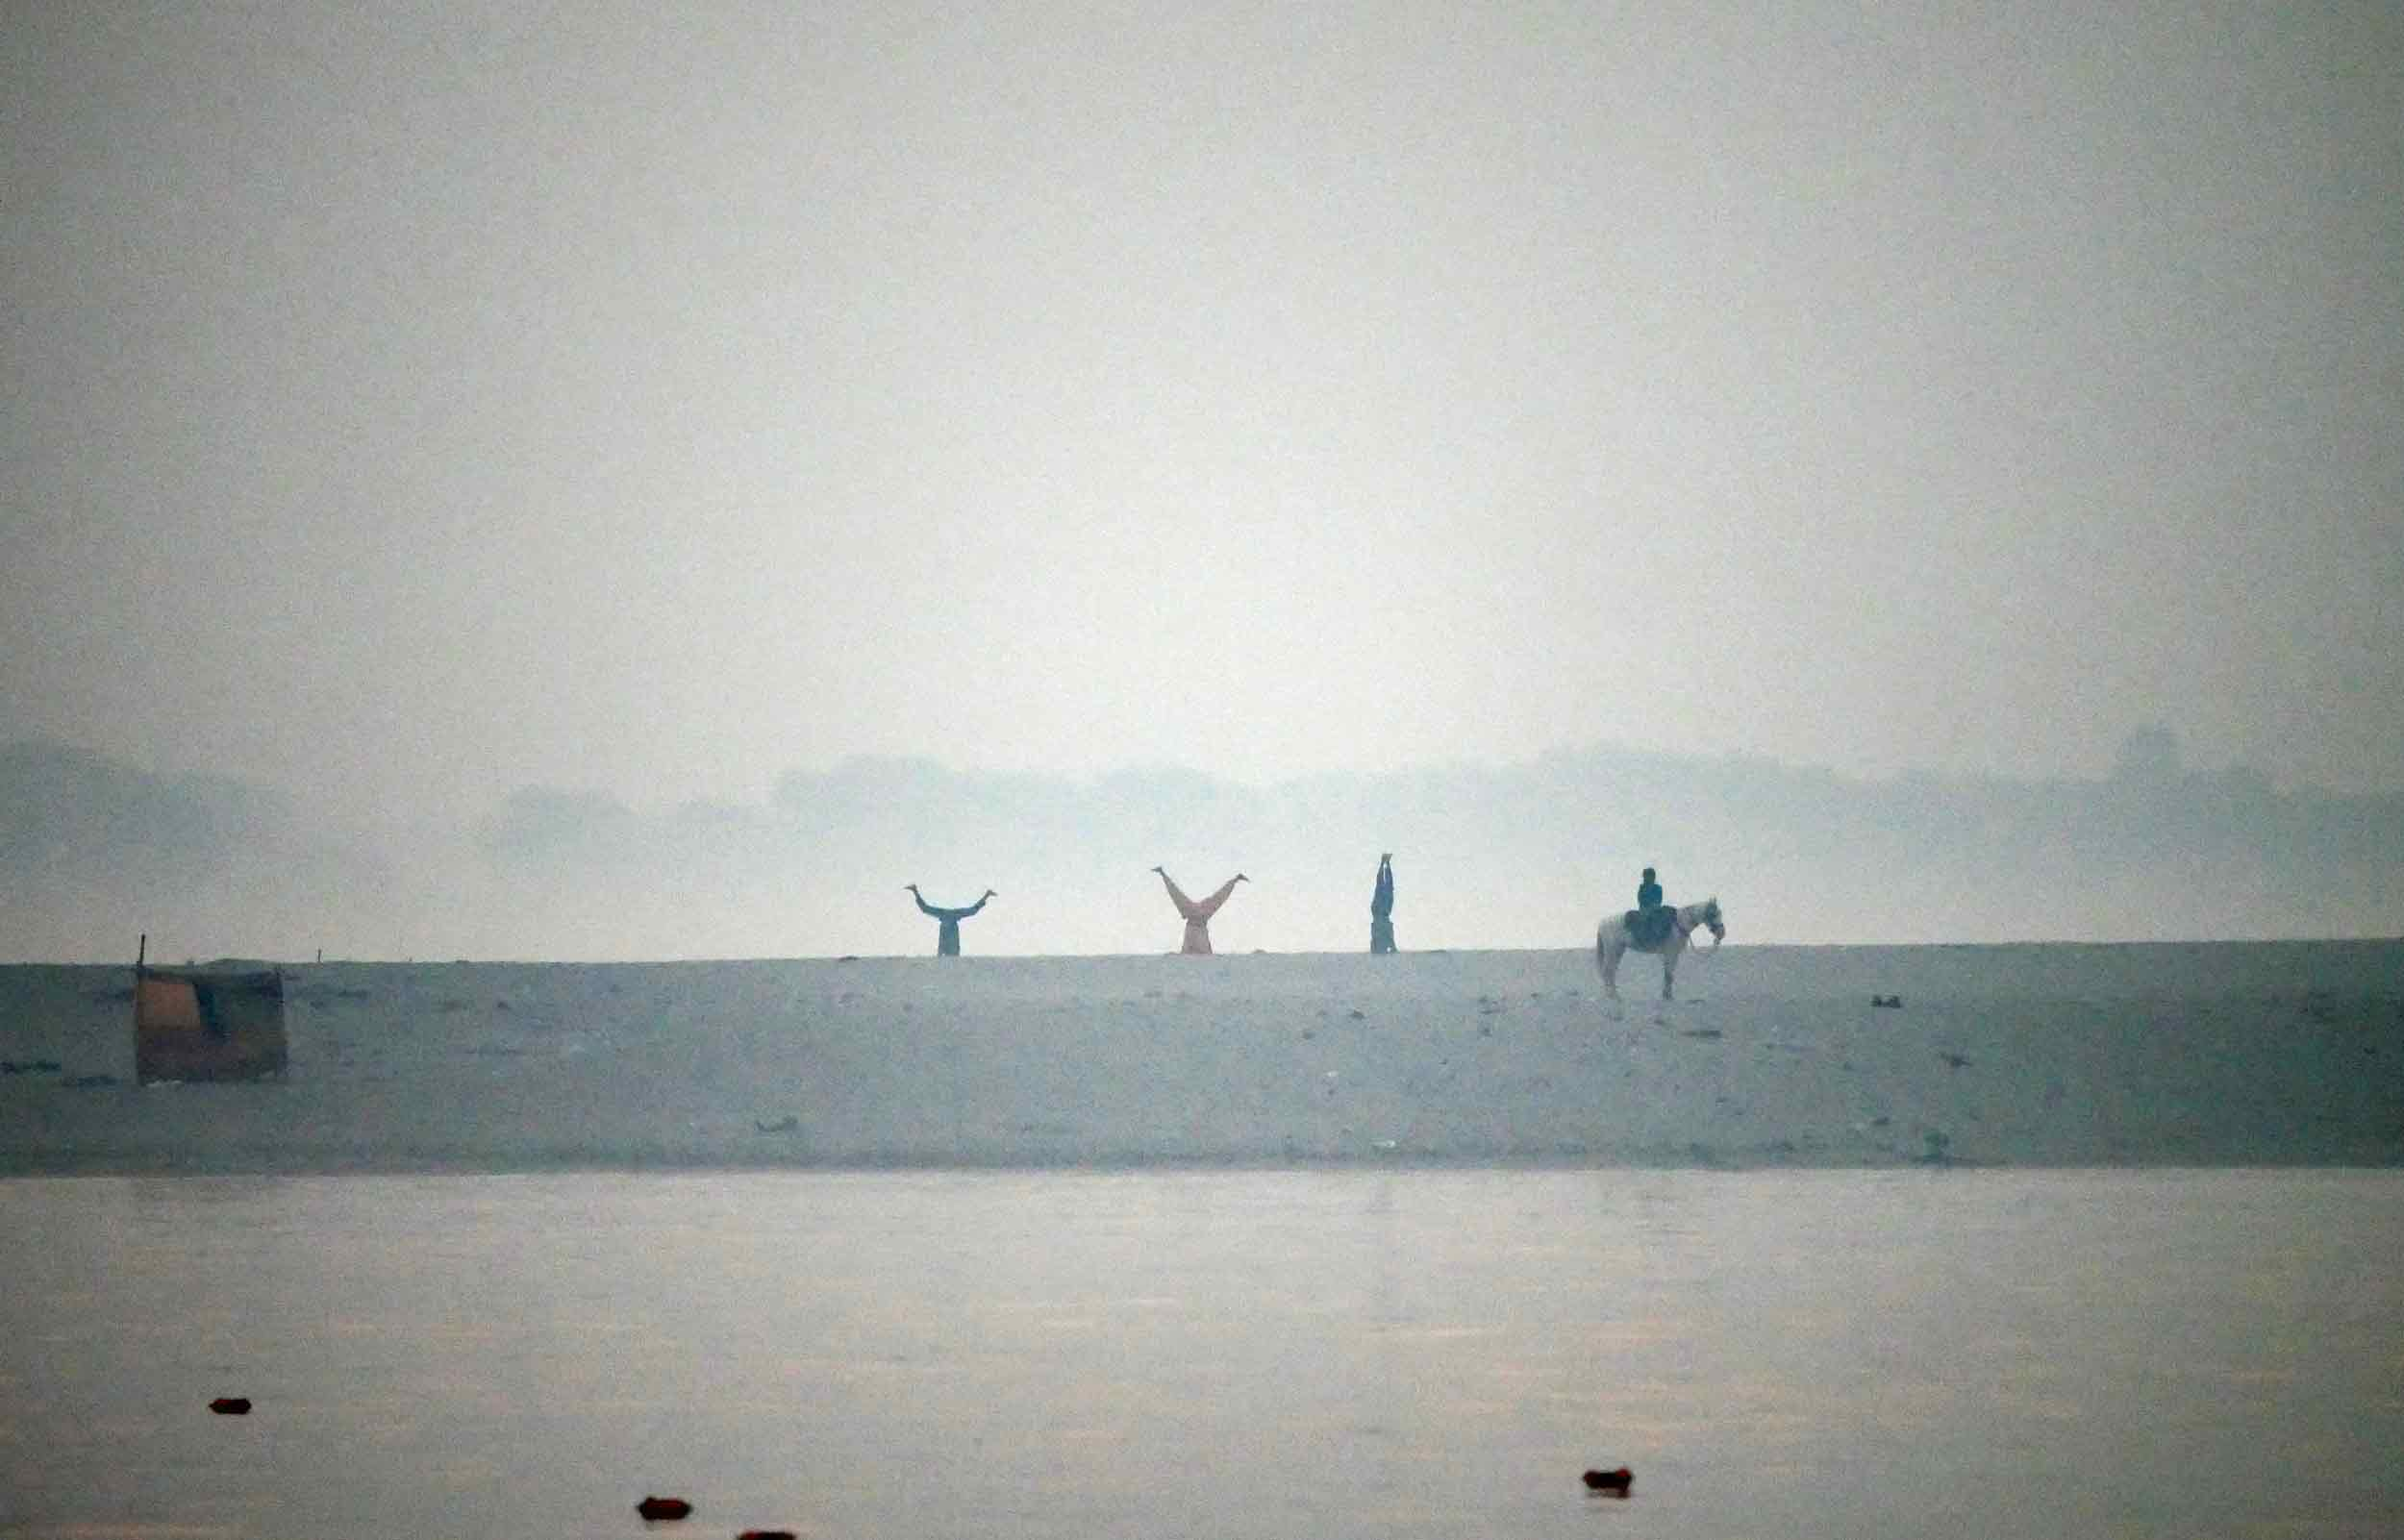 Yoga being practiced across the river on its sandy shore.